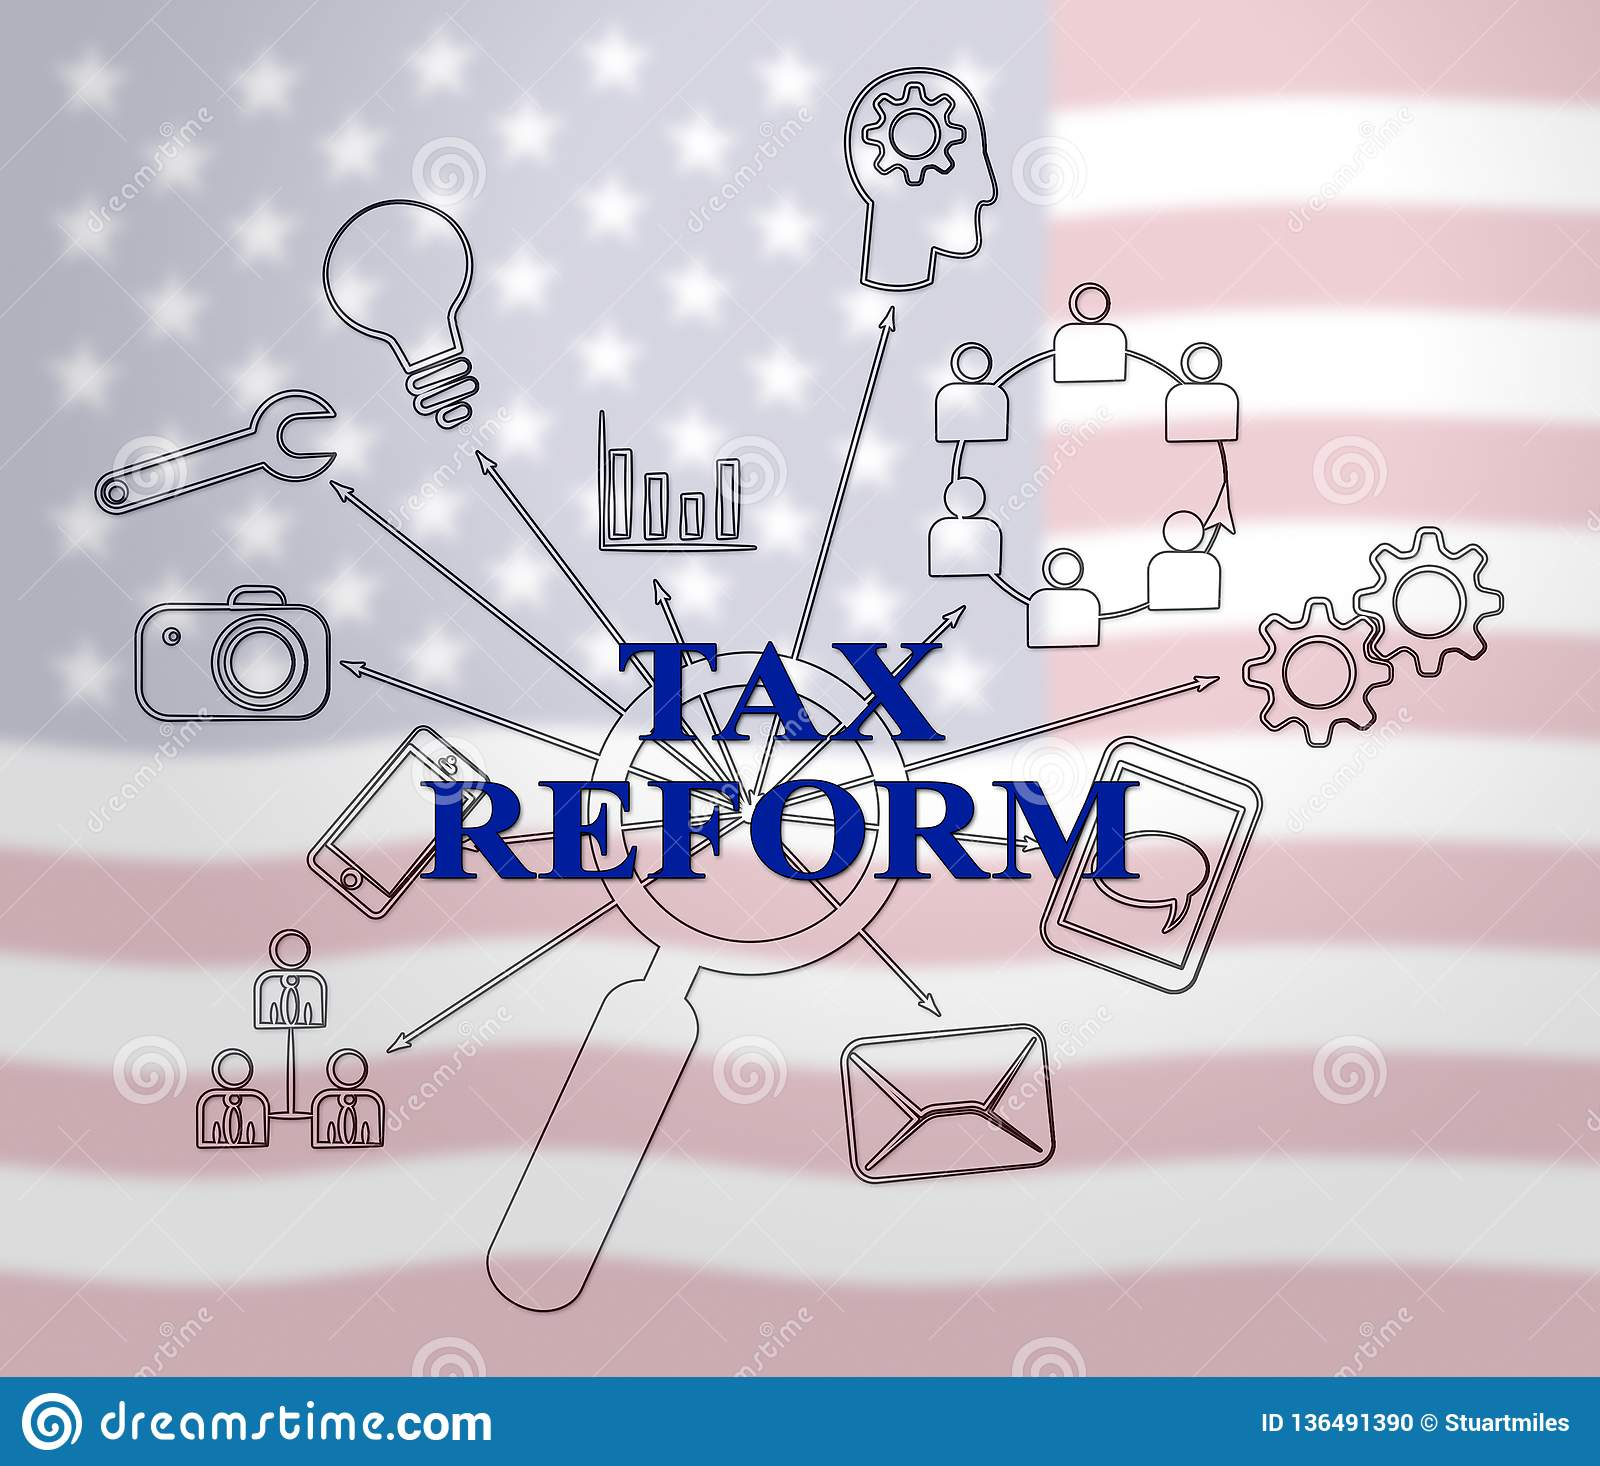 Trump Tax Reform To Change Taxation System In America